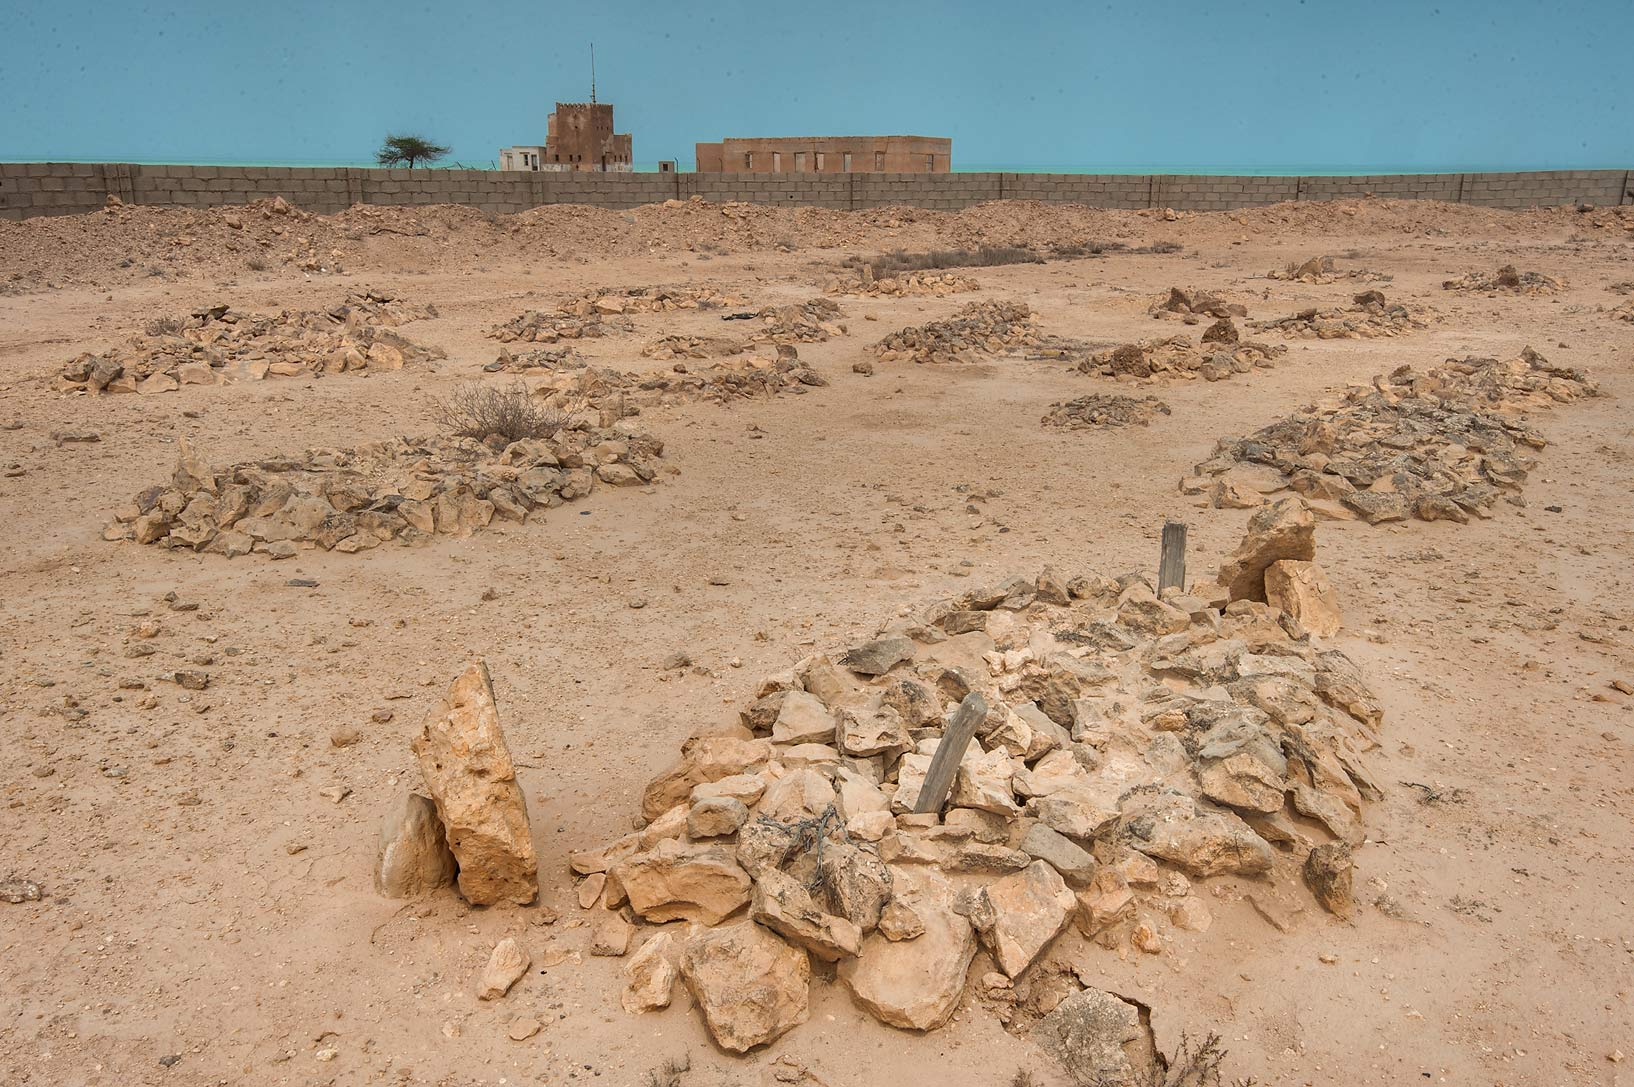 Al Areesh (Arish) Cemetery, with Coast Guard in background. Northern Qatar